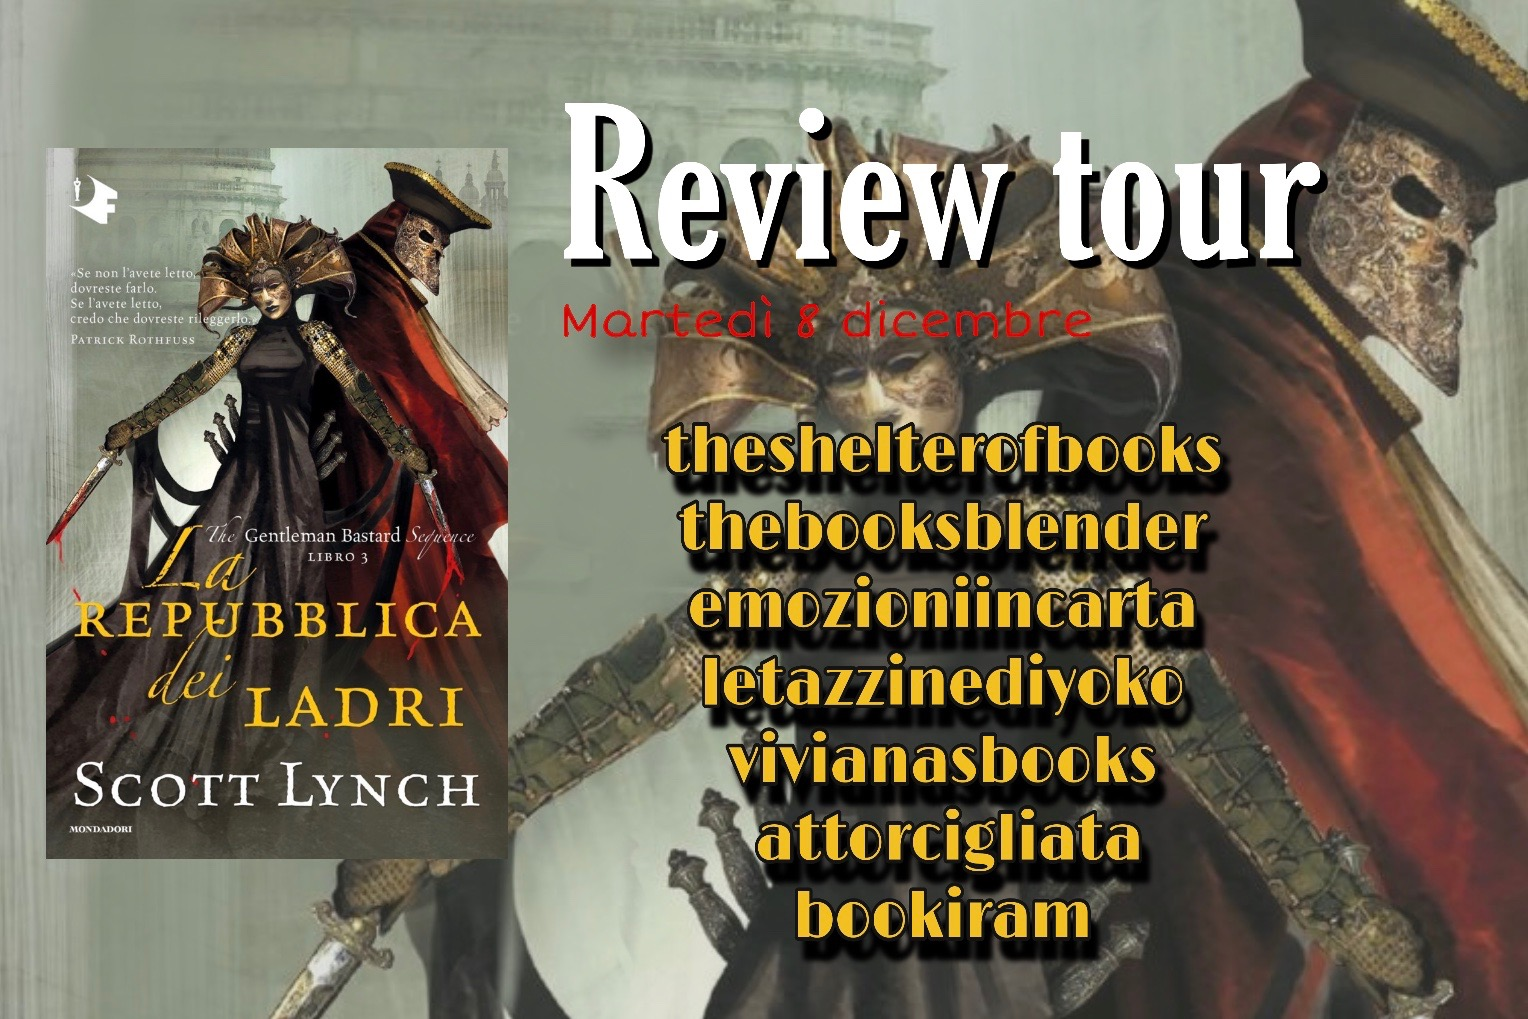 Review Tour: La repubblica dei ladri